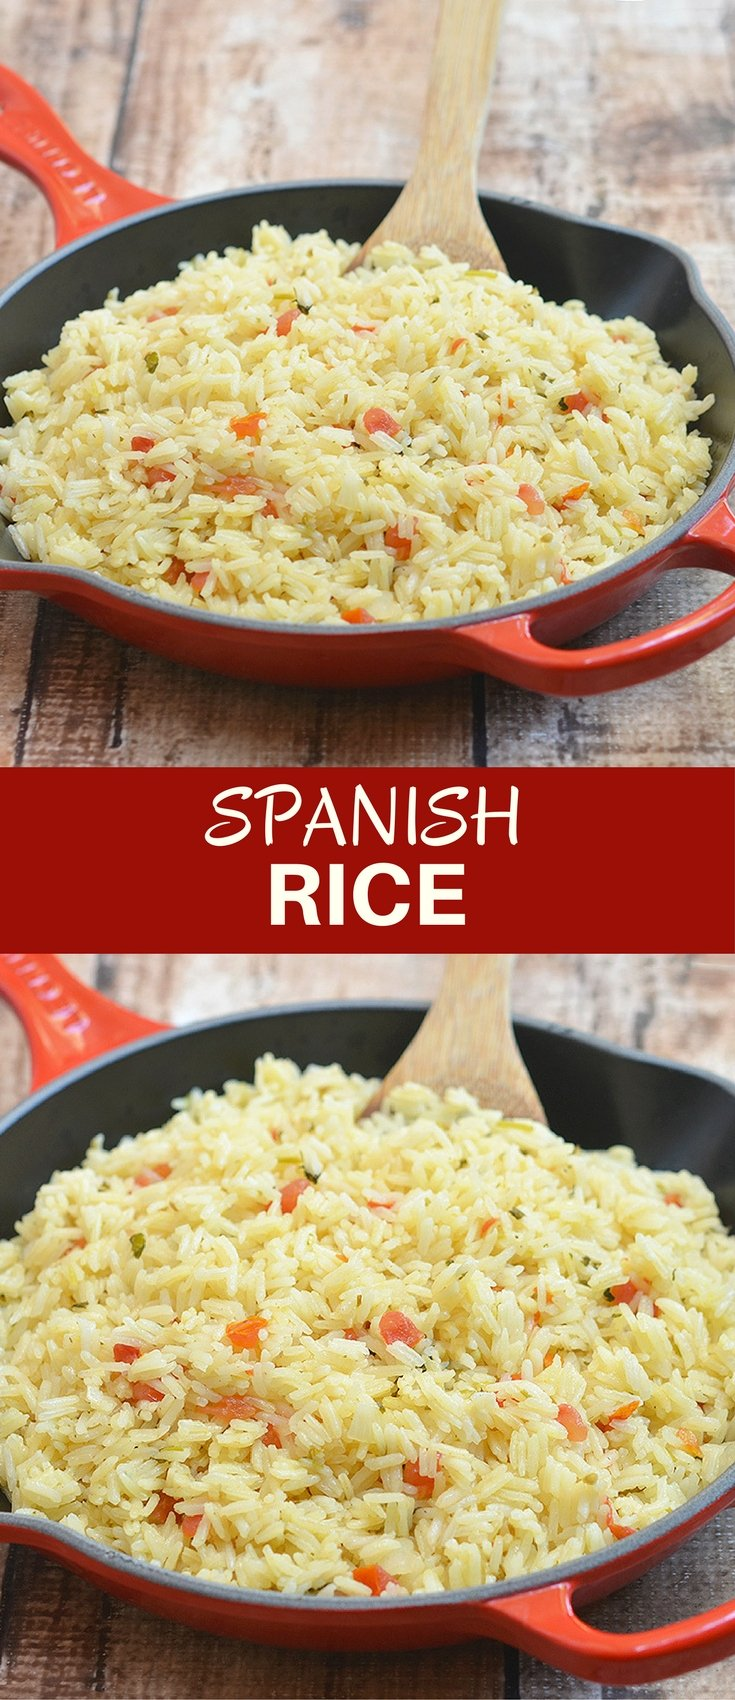 Spanish rice with fresh tomatoes, onions, garlic, cilantro, and lime juice is the perfect accompaniment to your favorite Mexican entrees. Quick and easy to make and cooks in one pan!